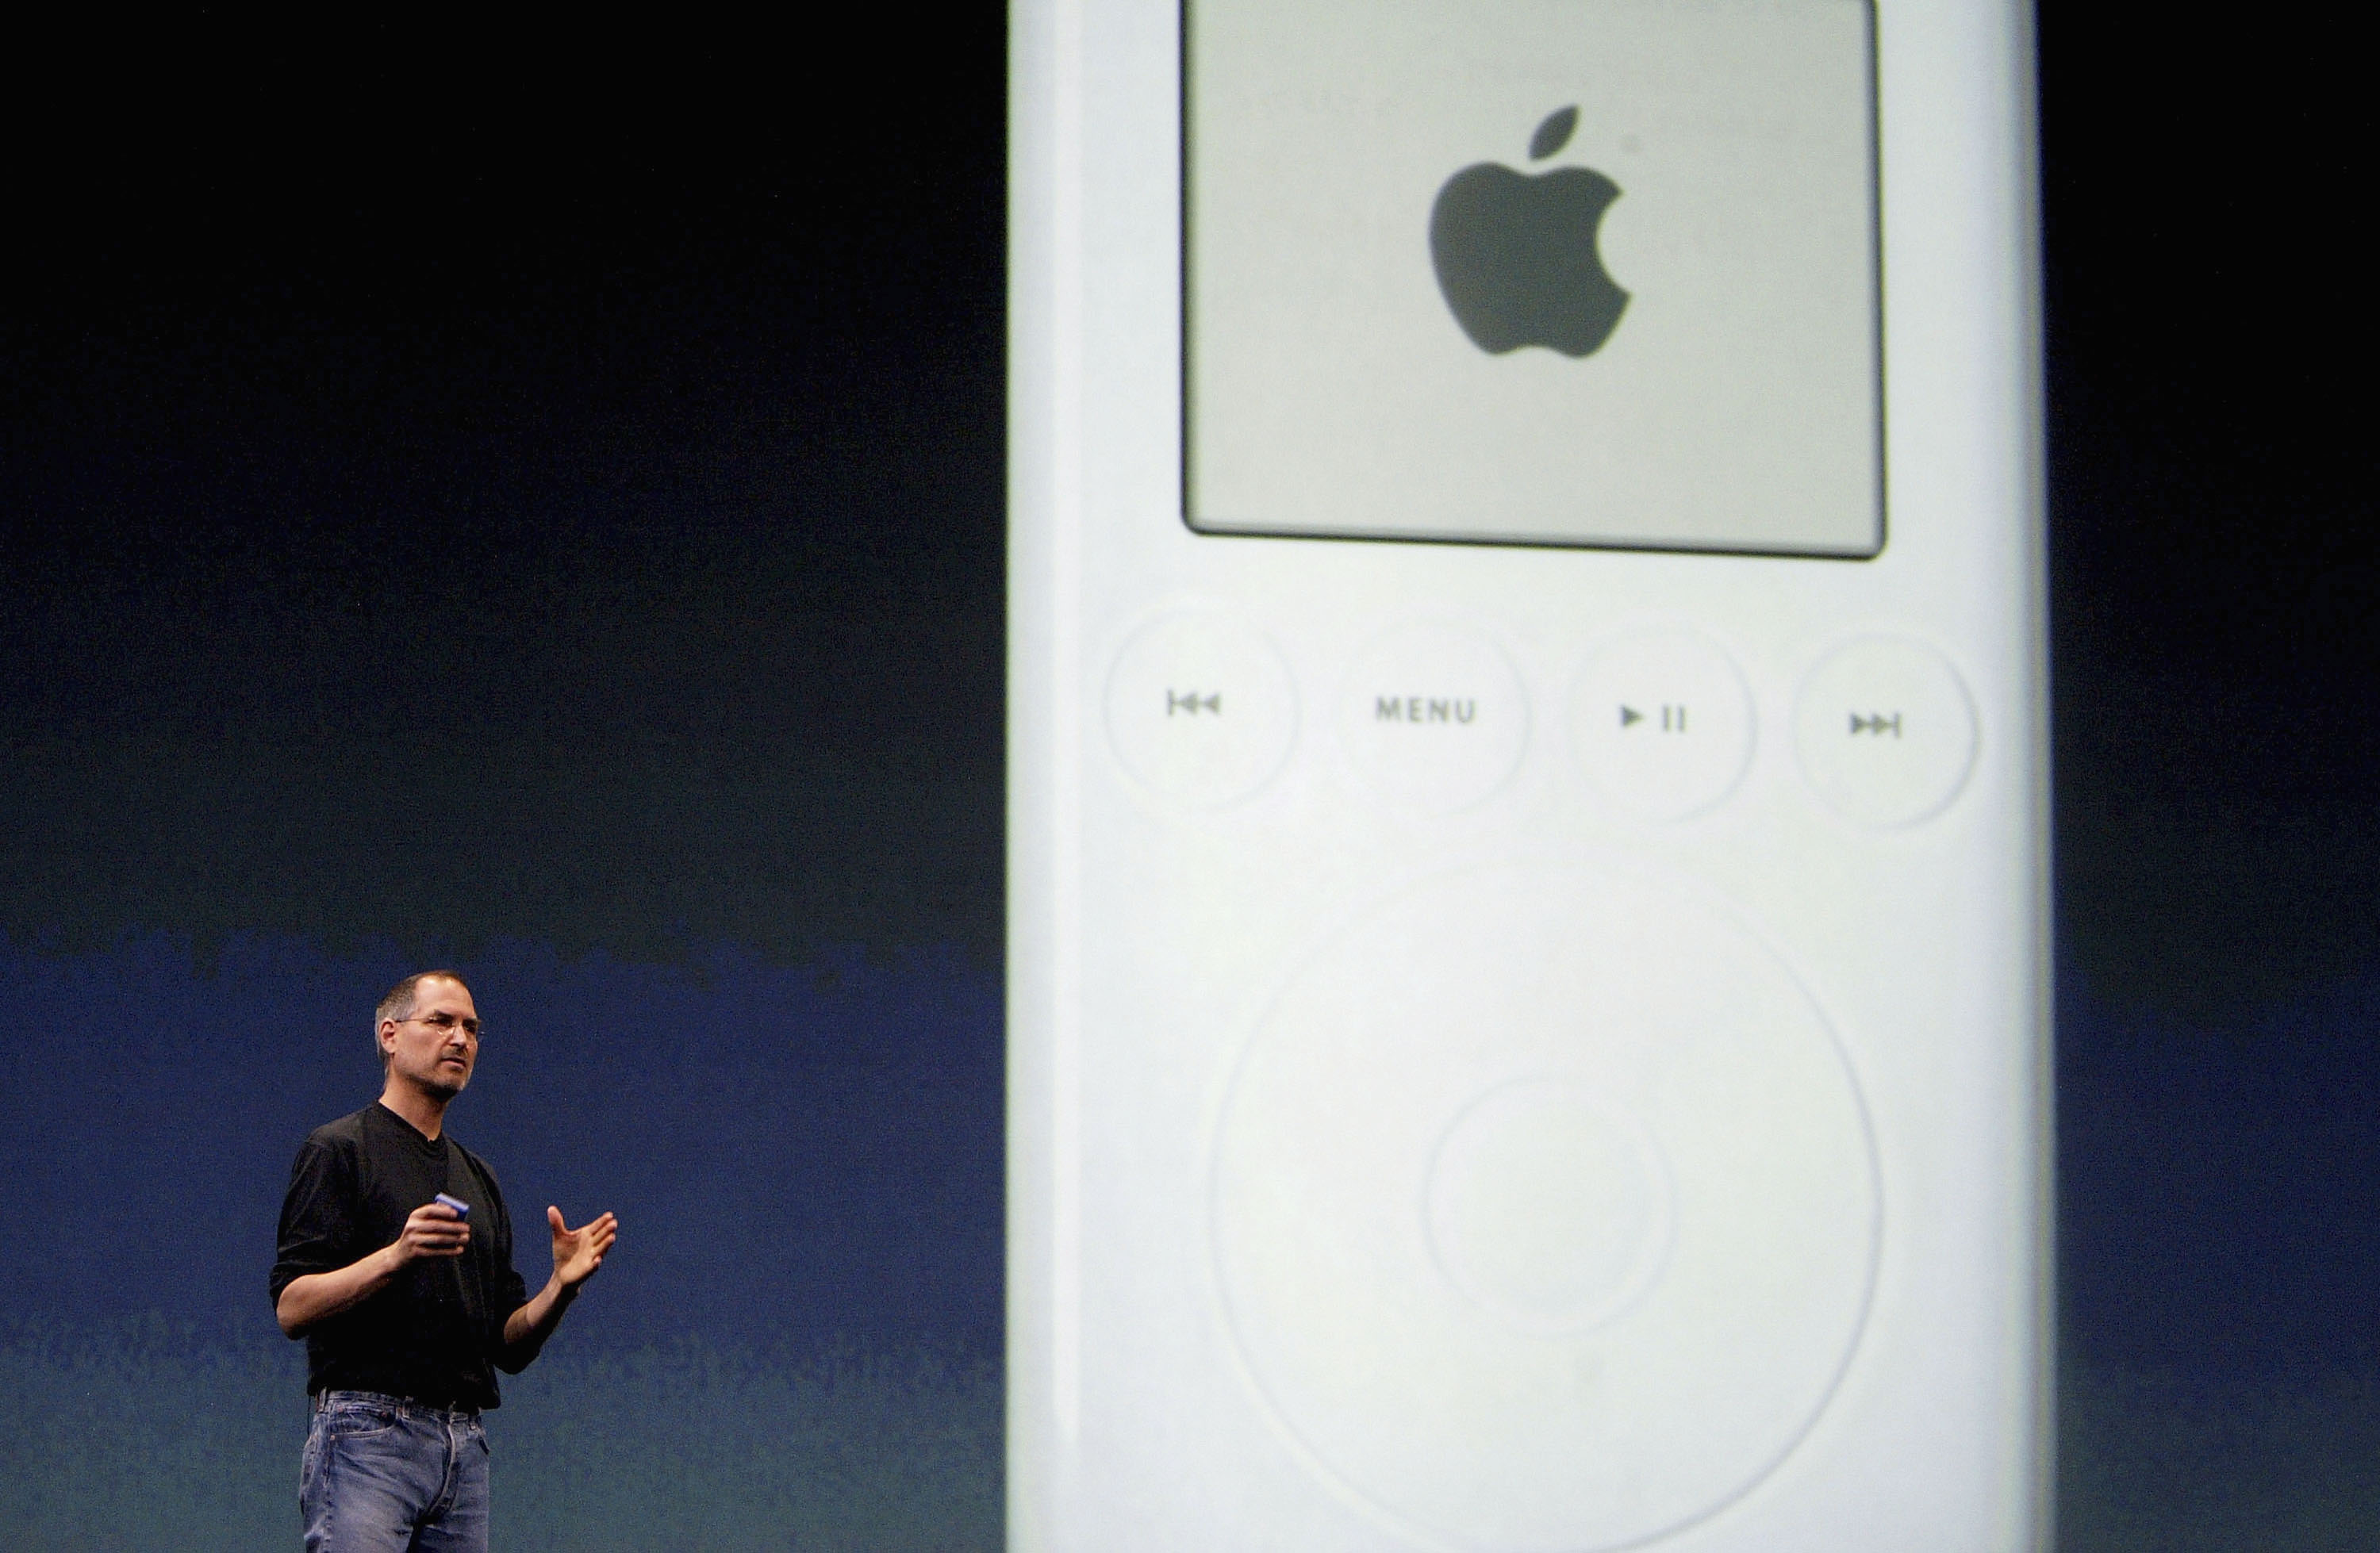 Steve Jobs, Chief Executive Officer of Apple computers, stands by a projection of an iPod as he launches iTunes Music Store in the territories of Great Britain, Germany and France, on June 15, 2004 in London.